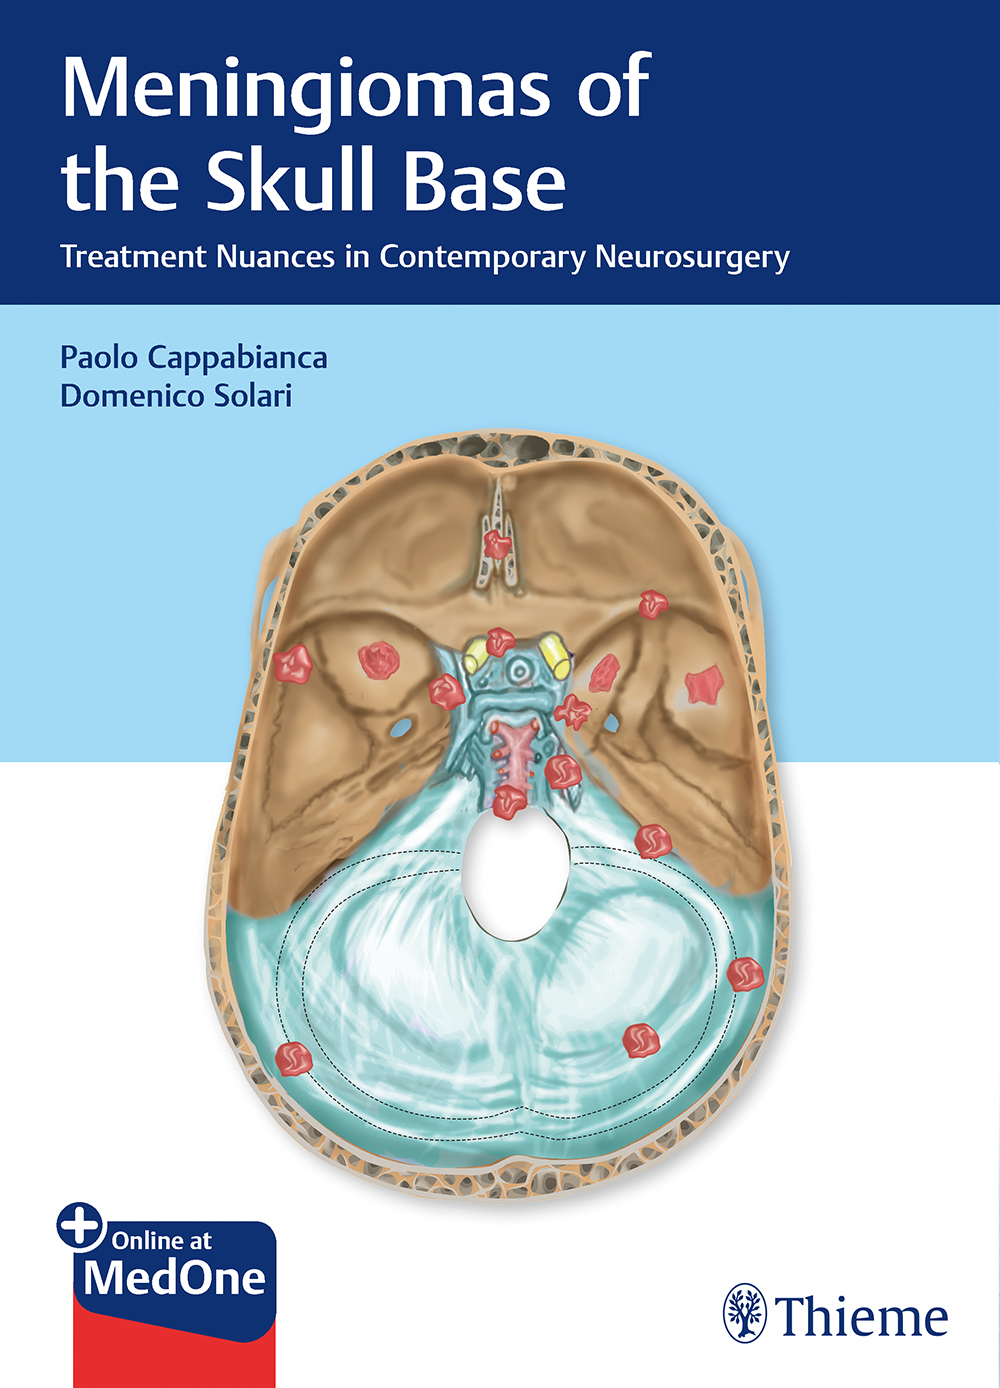 Meningiomas of the Skull Base: Treatment Nuances in Contemporary Neurosurgery